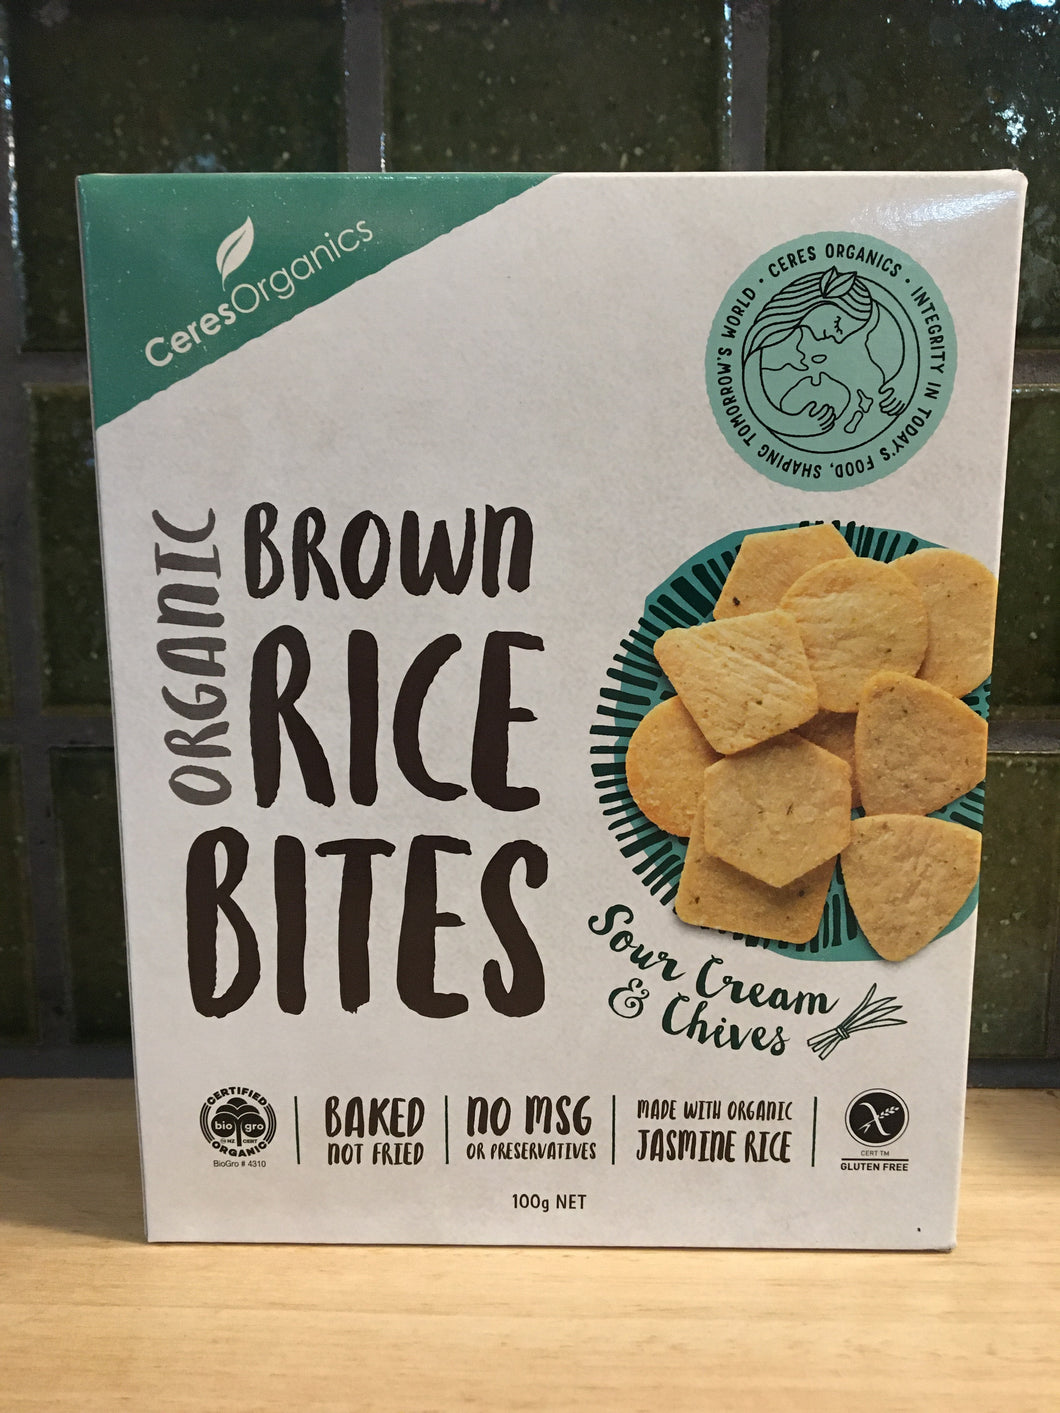 Ceres - Brown Rice Bites - Sour Cream & Chives 100g